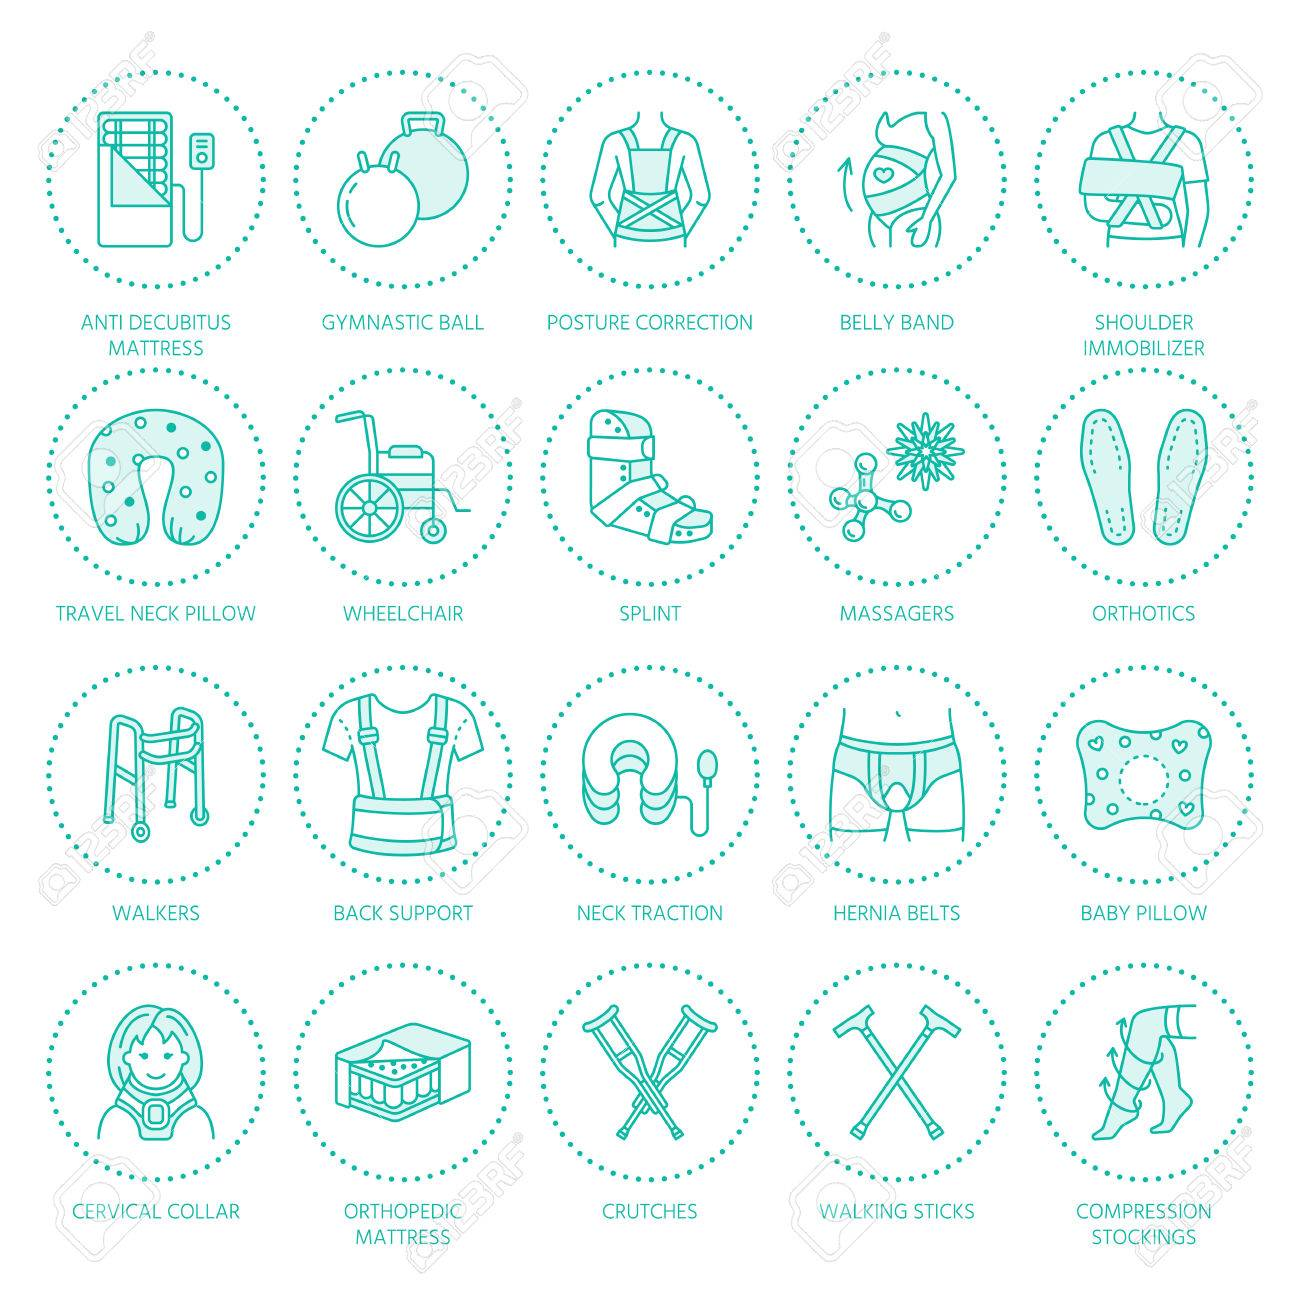 Orthopedic, trauma rehabilitation line icons. Crutches, orthopedics mattress pillow, cervical collar, walkers and other medical rehab goods. Health care thin linear signs for clinic and hospital. - 72847812